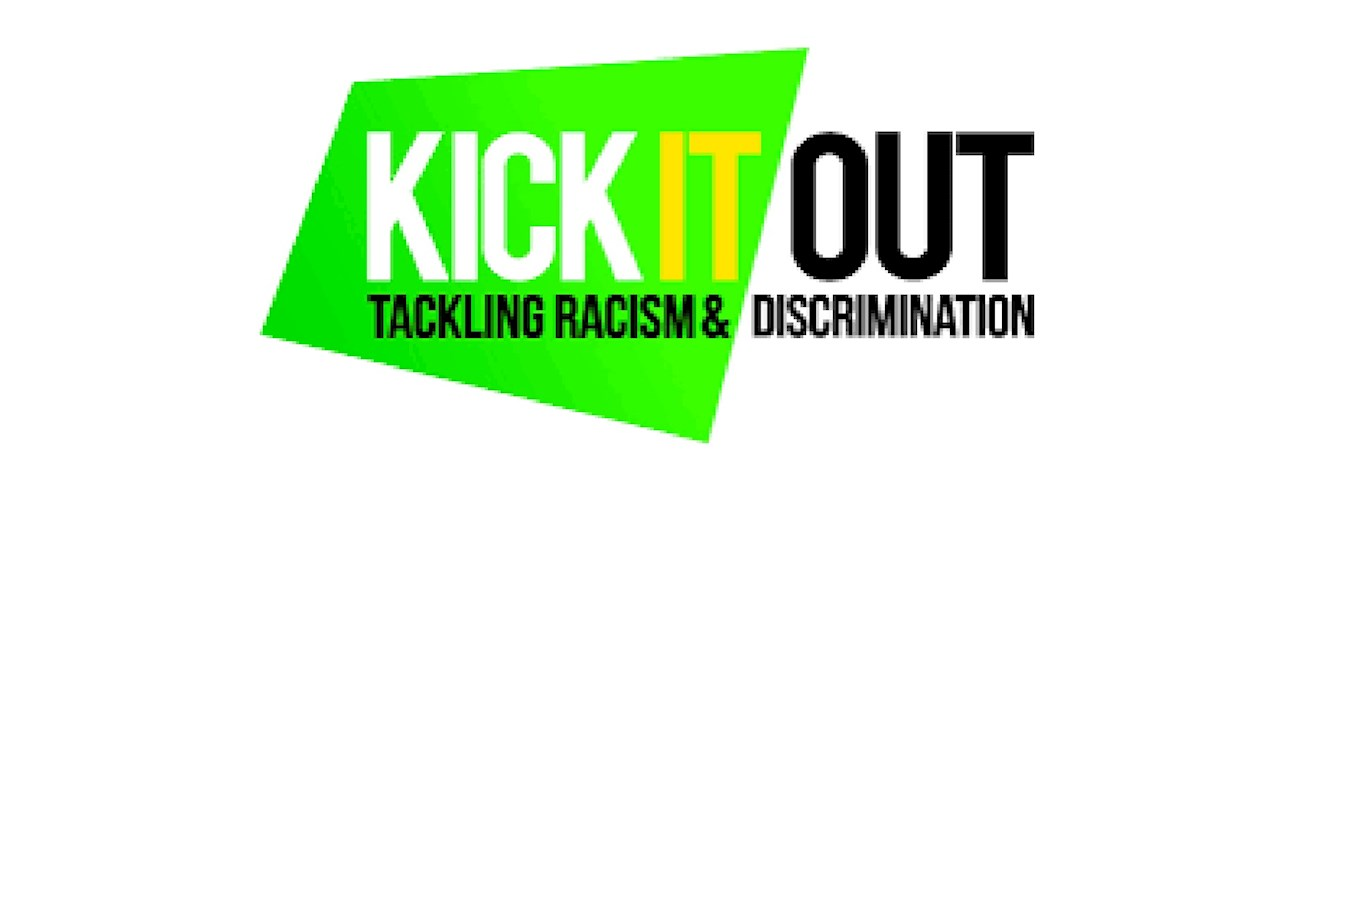 KICK IT OUT! WITH PRIDE - News - Bradford City